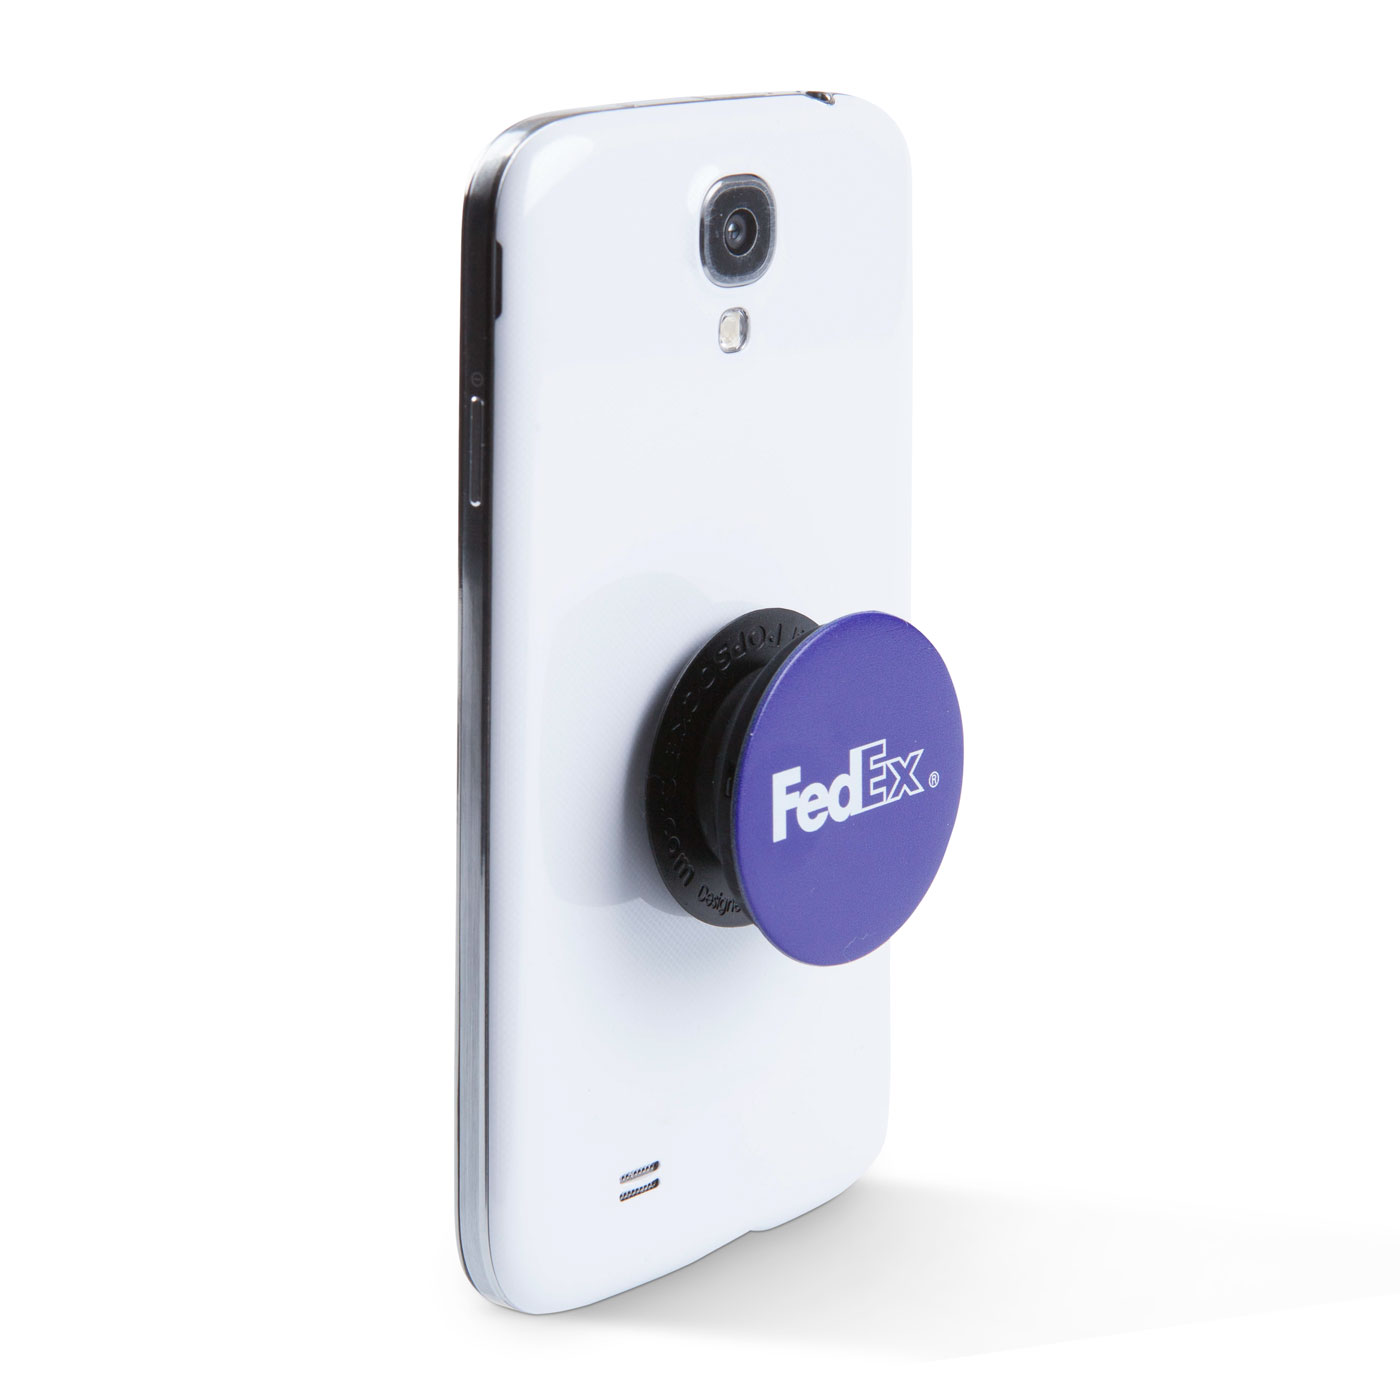 Phone Accessory Fedex Popsocket Phone Accessory The Fedex Company Store